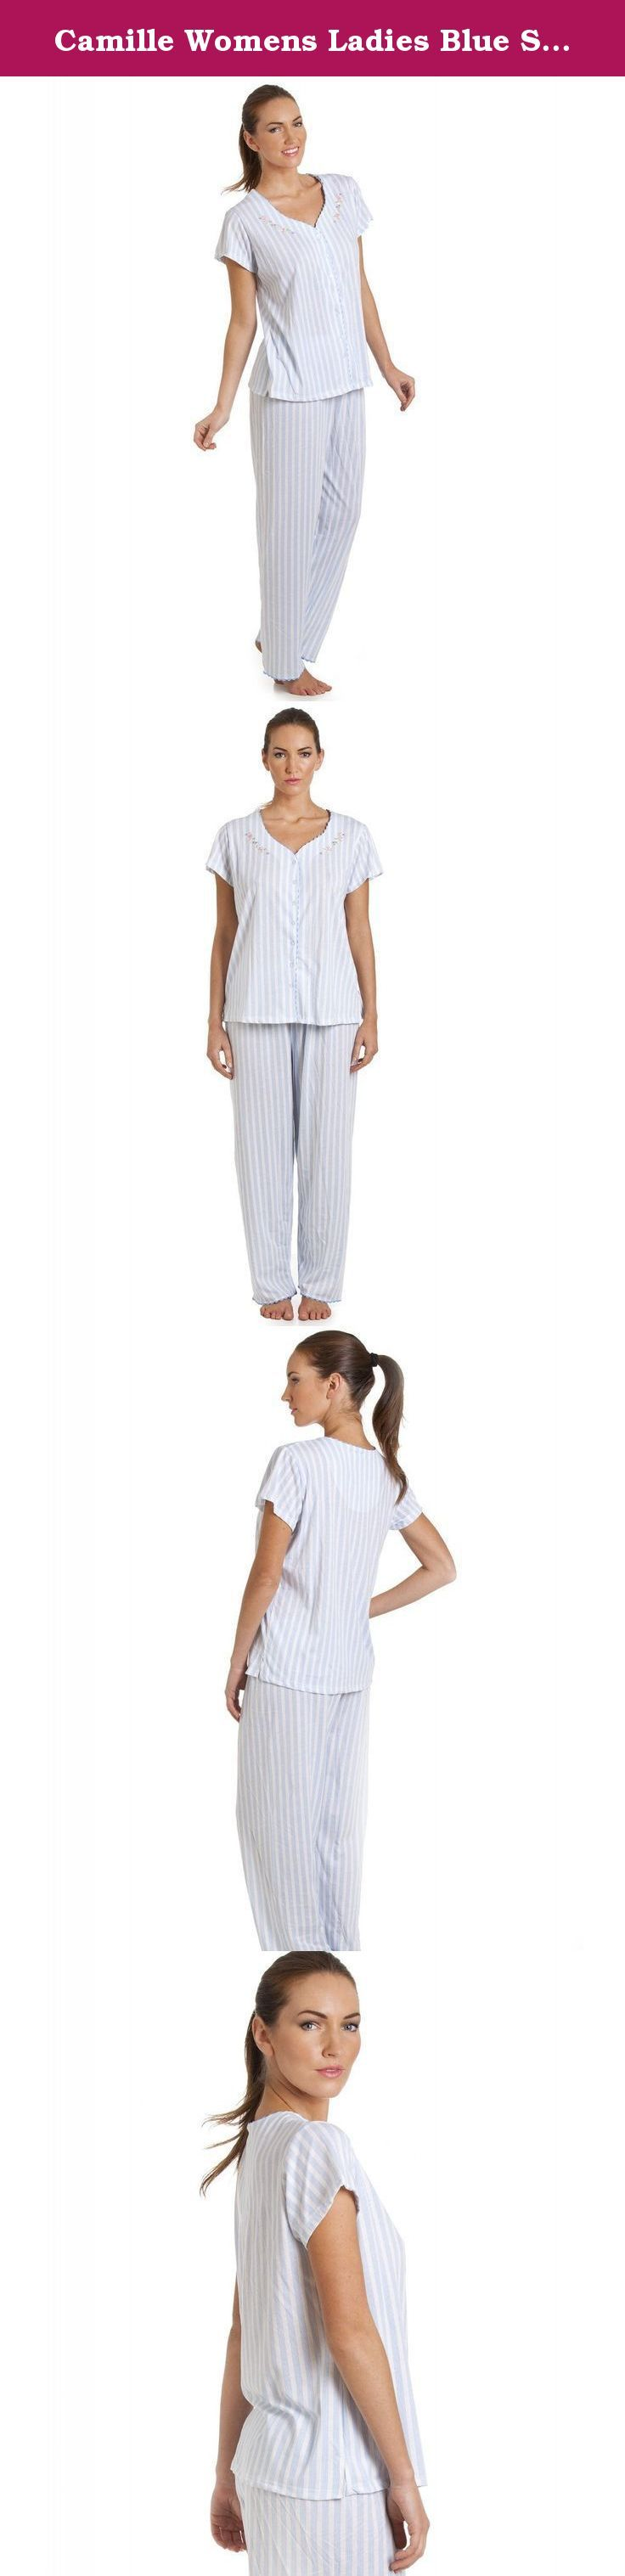 Camille Womens Ladies Blue Stripe Short Sleeve Pyjama Set 14/16 BLUE. Blue stripe pyjama set in a lightweight and breathable material. The v neck short sleeve top features a pretty embroidered flower design around the neckline. The bottoms are full length with an elasticated waist. Available in a choice of Lilac or Blue and in sizes 6-20. A pretty new range of lightweight pyjamas perfect for the Spring and Summer. Machine Washable .